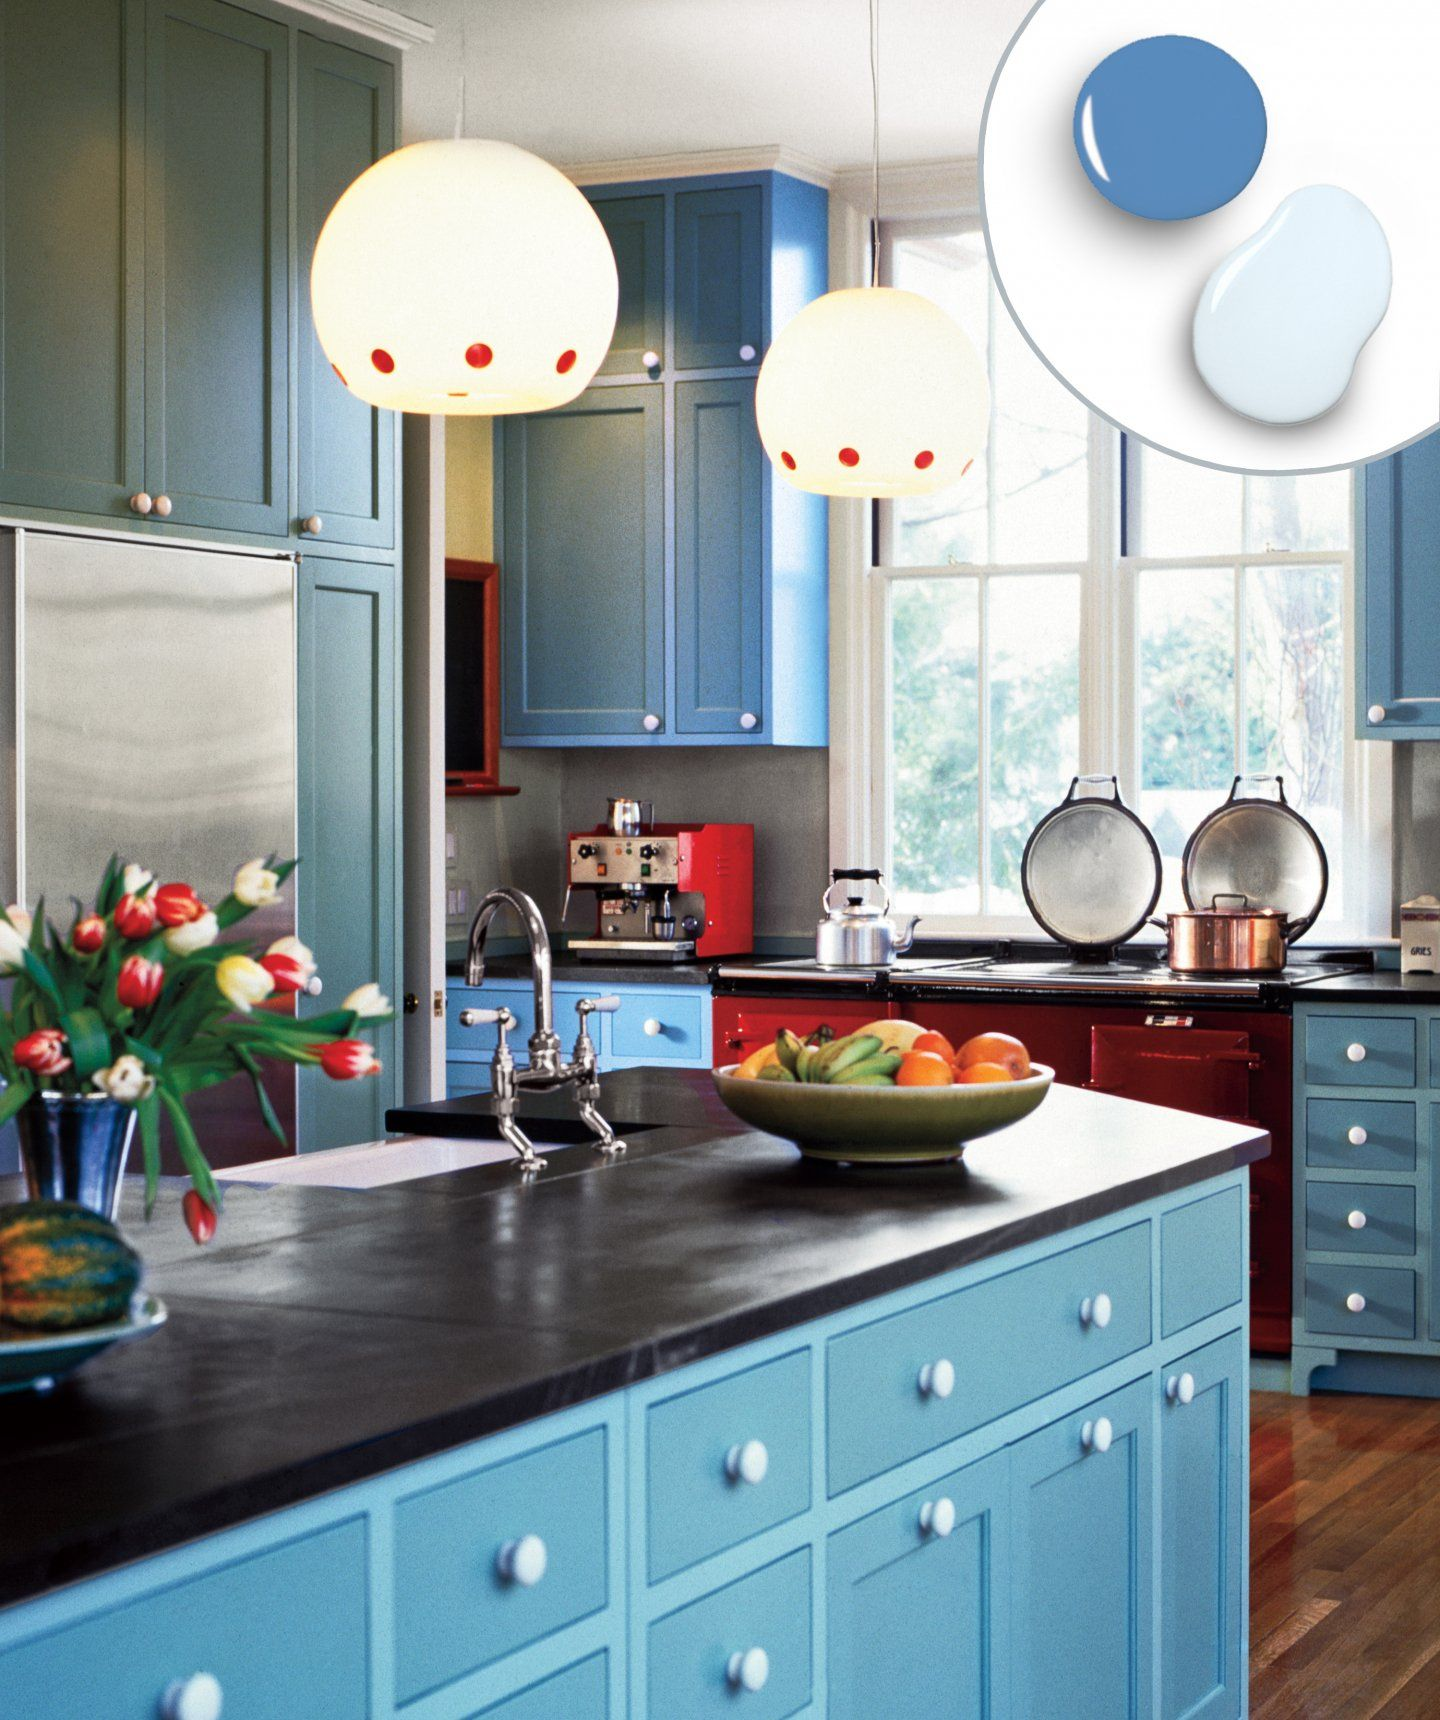 Mixing Kitchen Cabinet Colors 12 Kitchen Cabinet Color Combos That Really Cook Simple